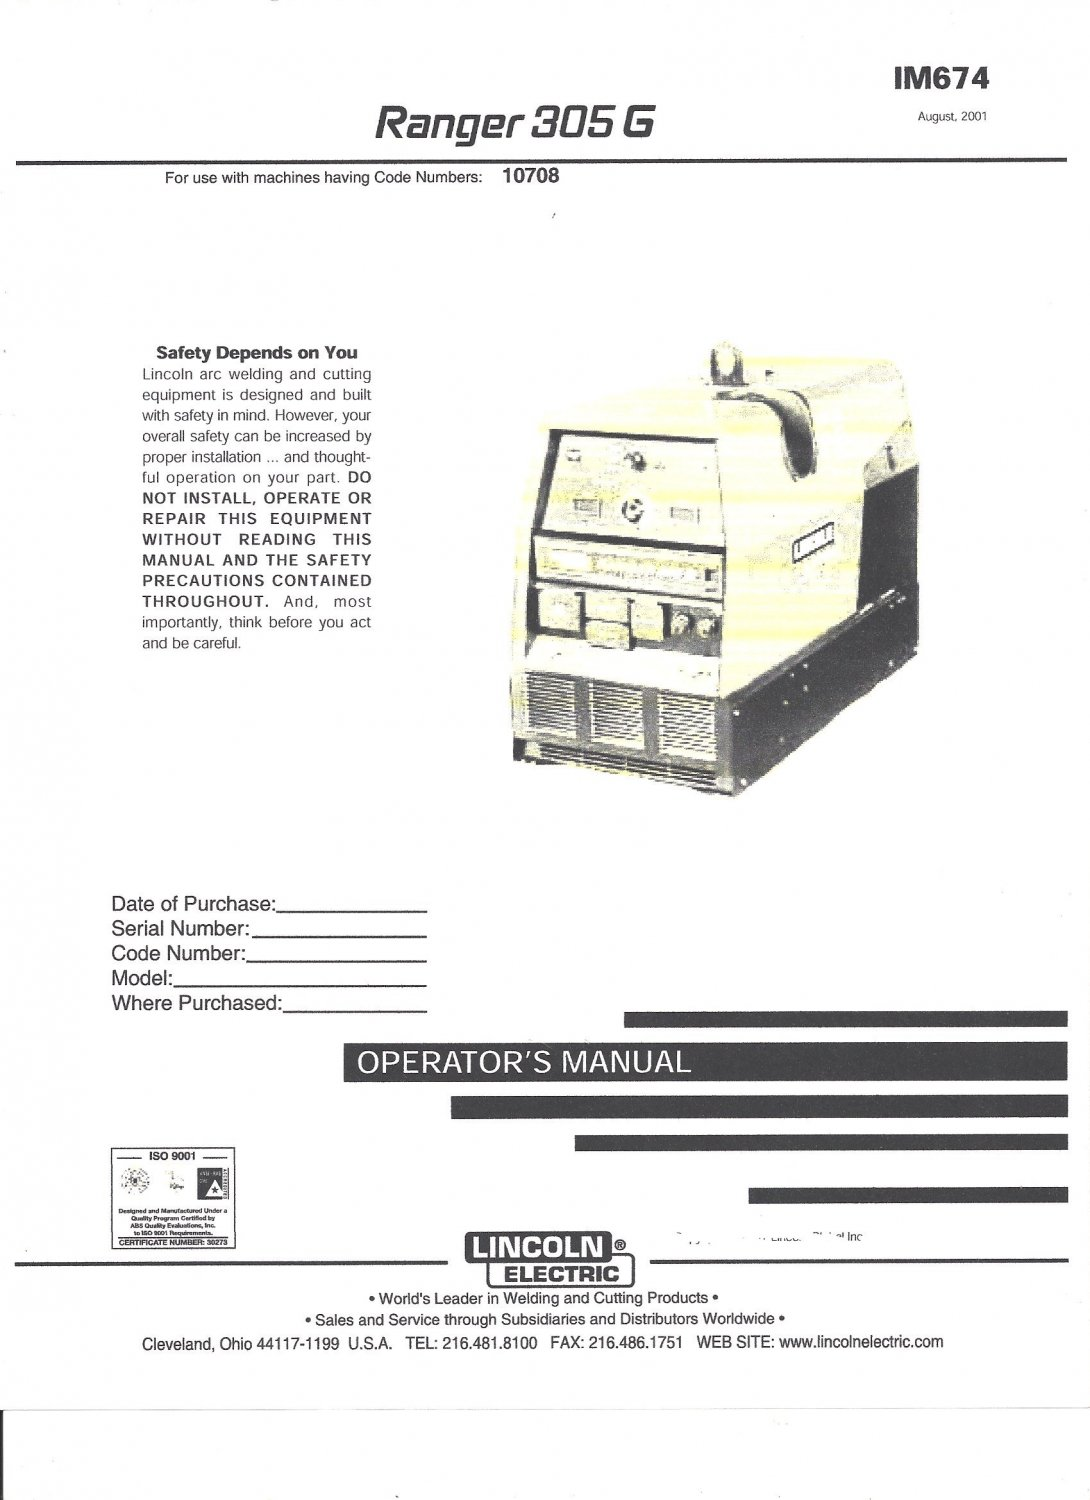 Lincoln Electric RANGER 305 G Welder Operator's Manual ( Copy)